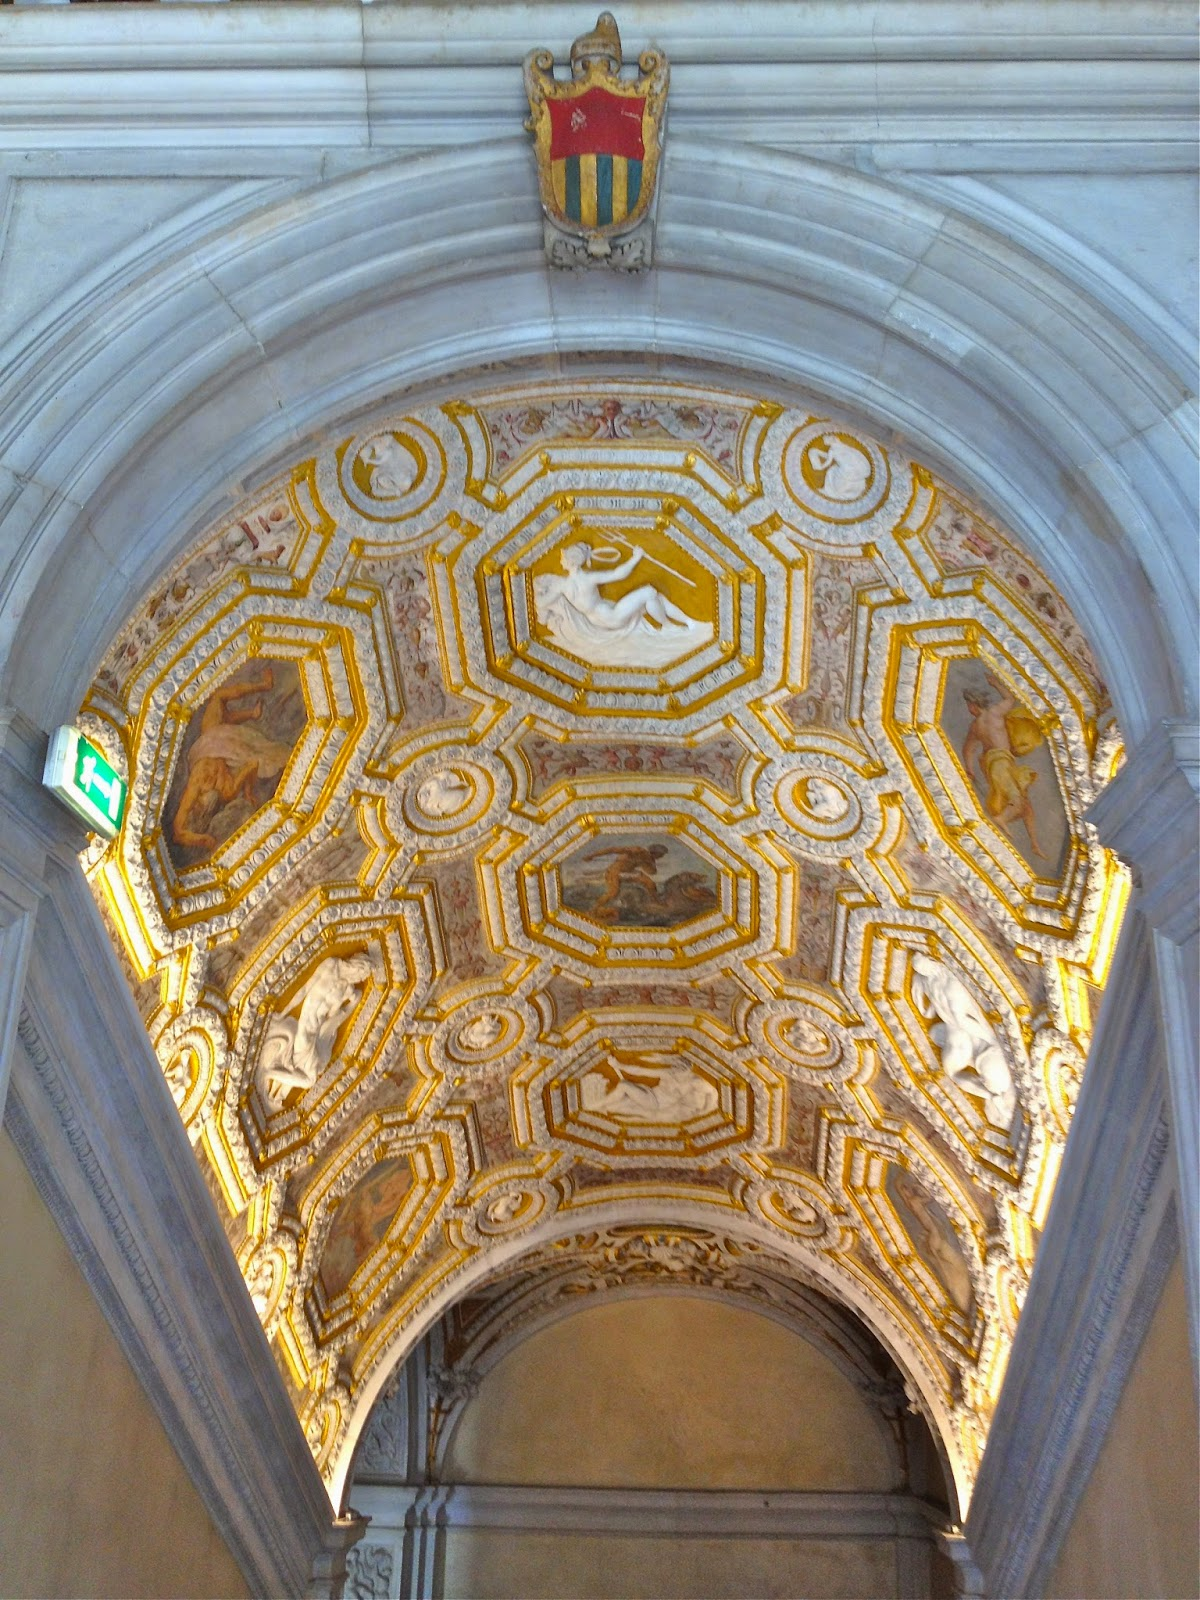 A staircase with lavish decorations in Palazzo Ducale, Venezia.